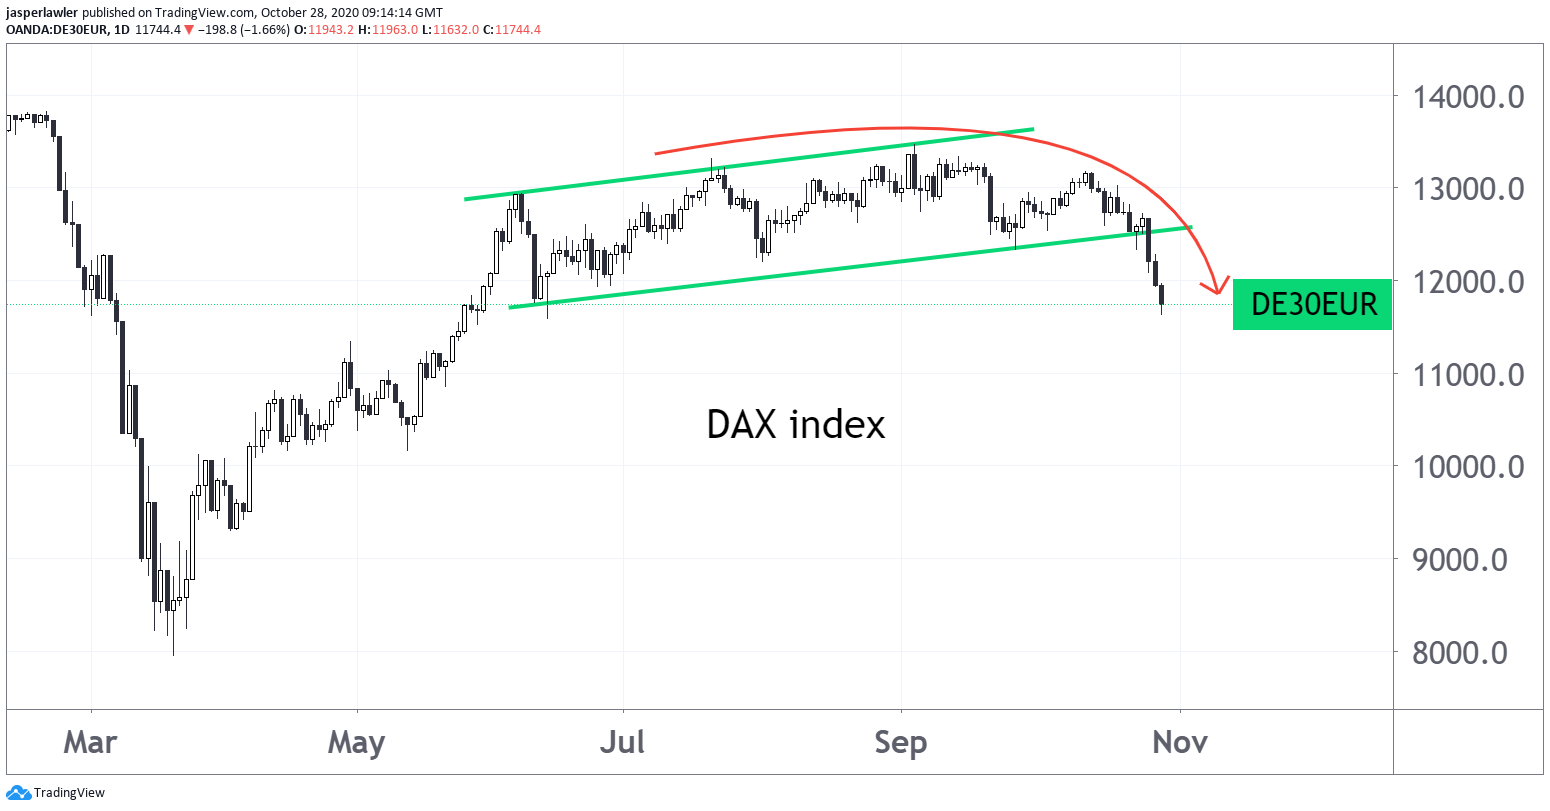 German stocks are rolling over - DAX index 4 month lows